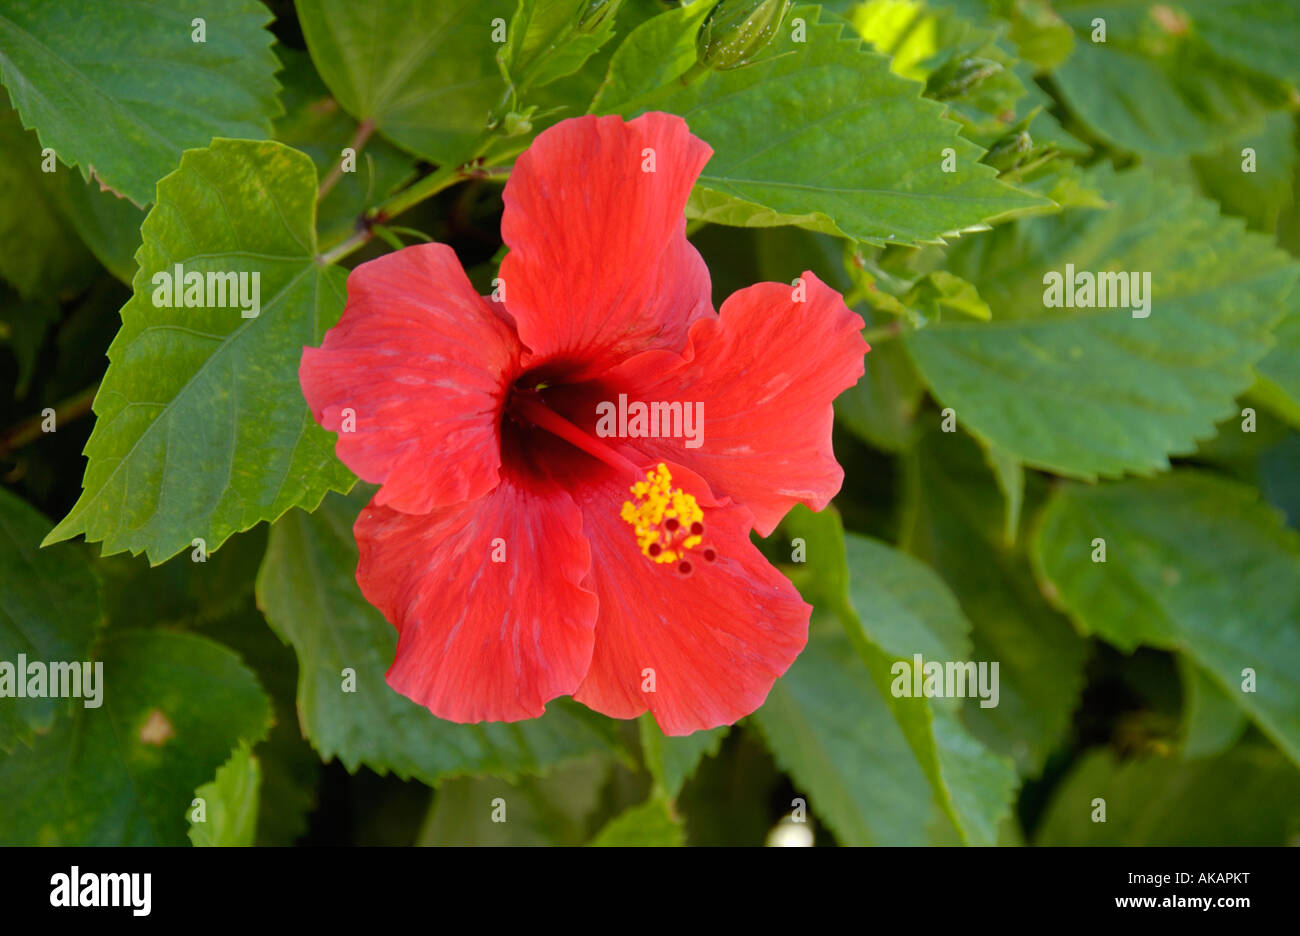 red hibiscus flower growing on the mediterranean island of cyprus eu stock photo 14941259 alamy. Black Bedroom Furniture Sets. Home Design Ideas